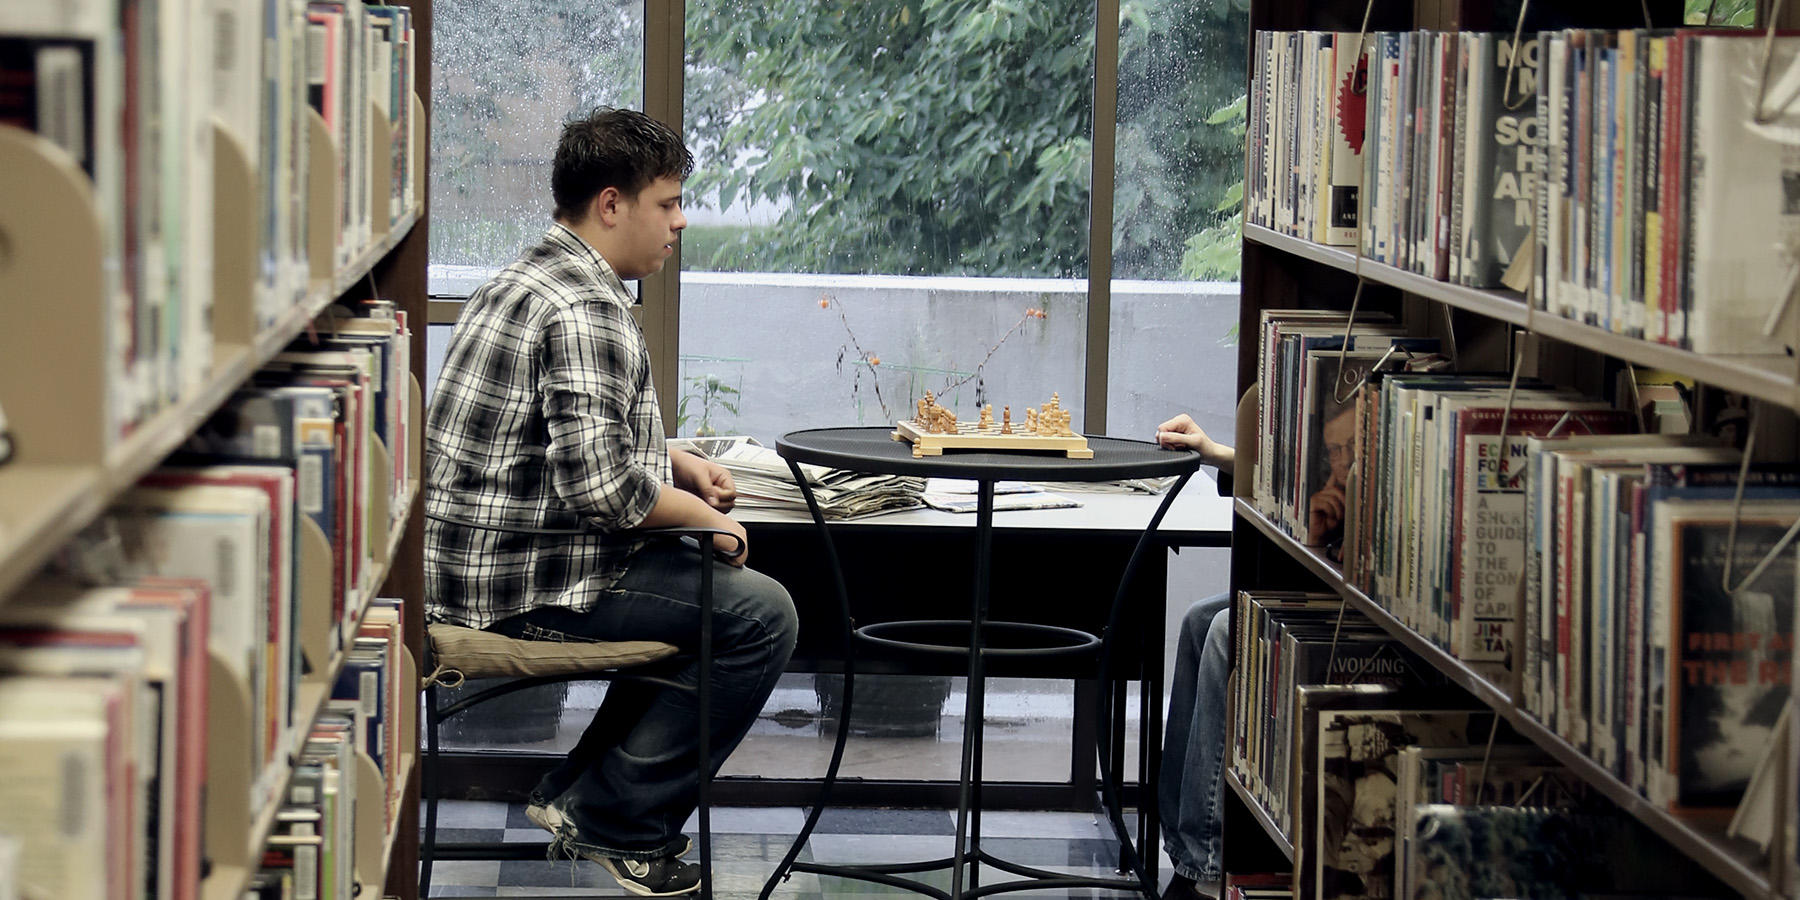 Students in ICC Library playing chess